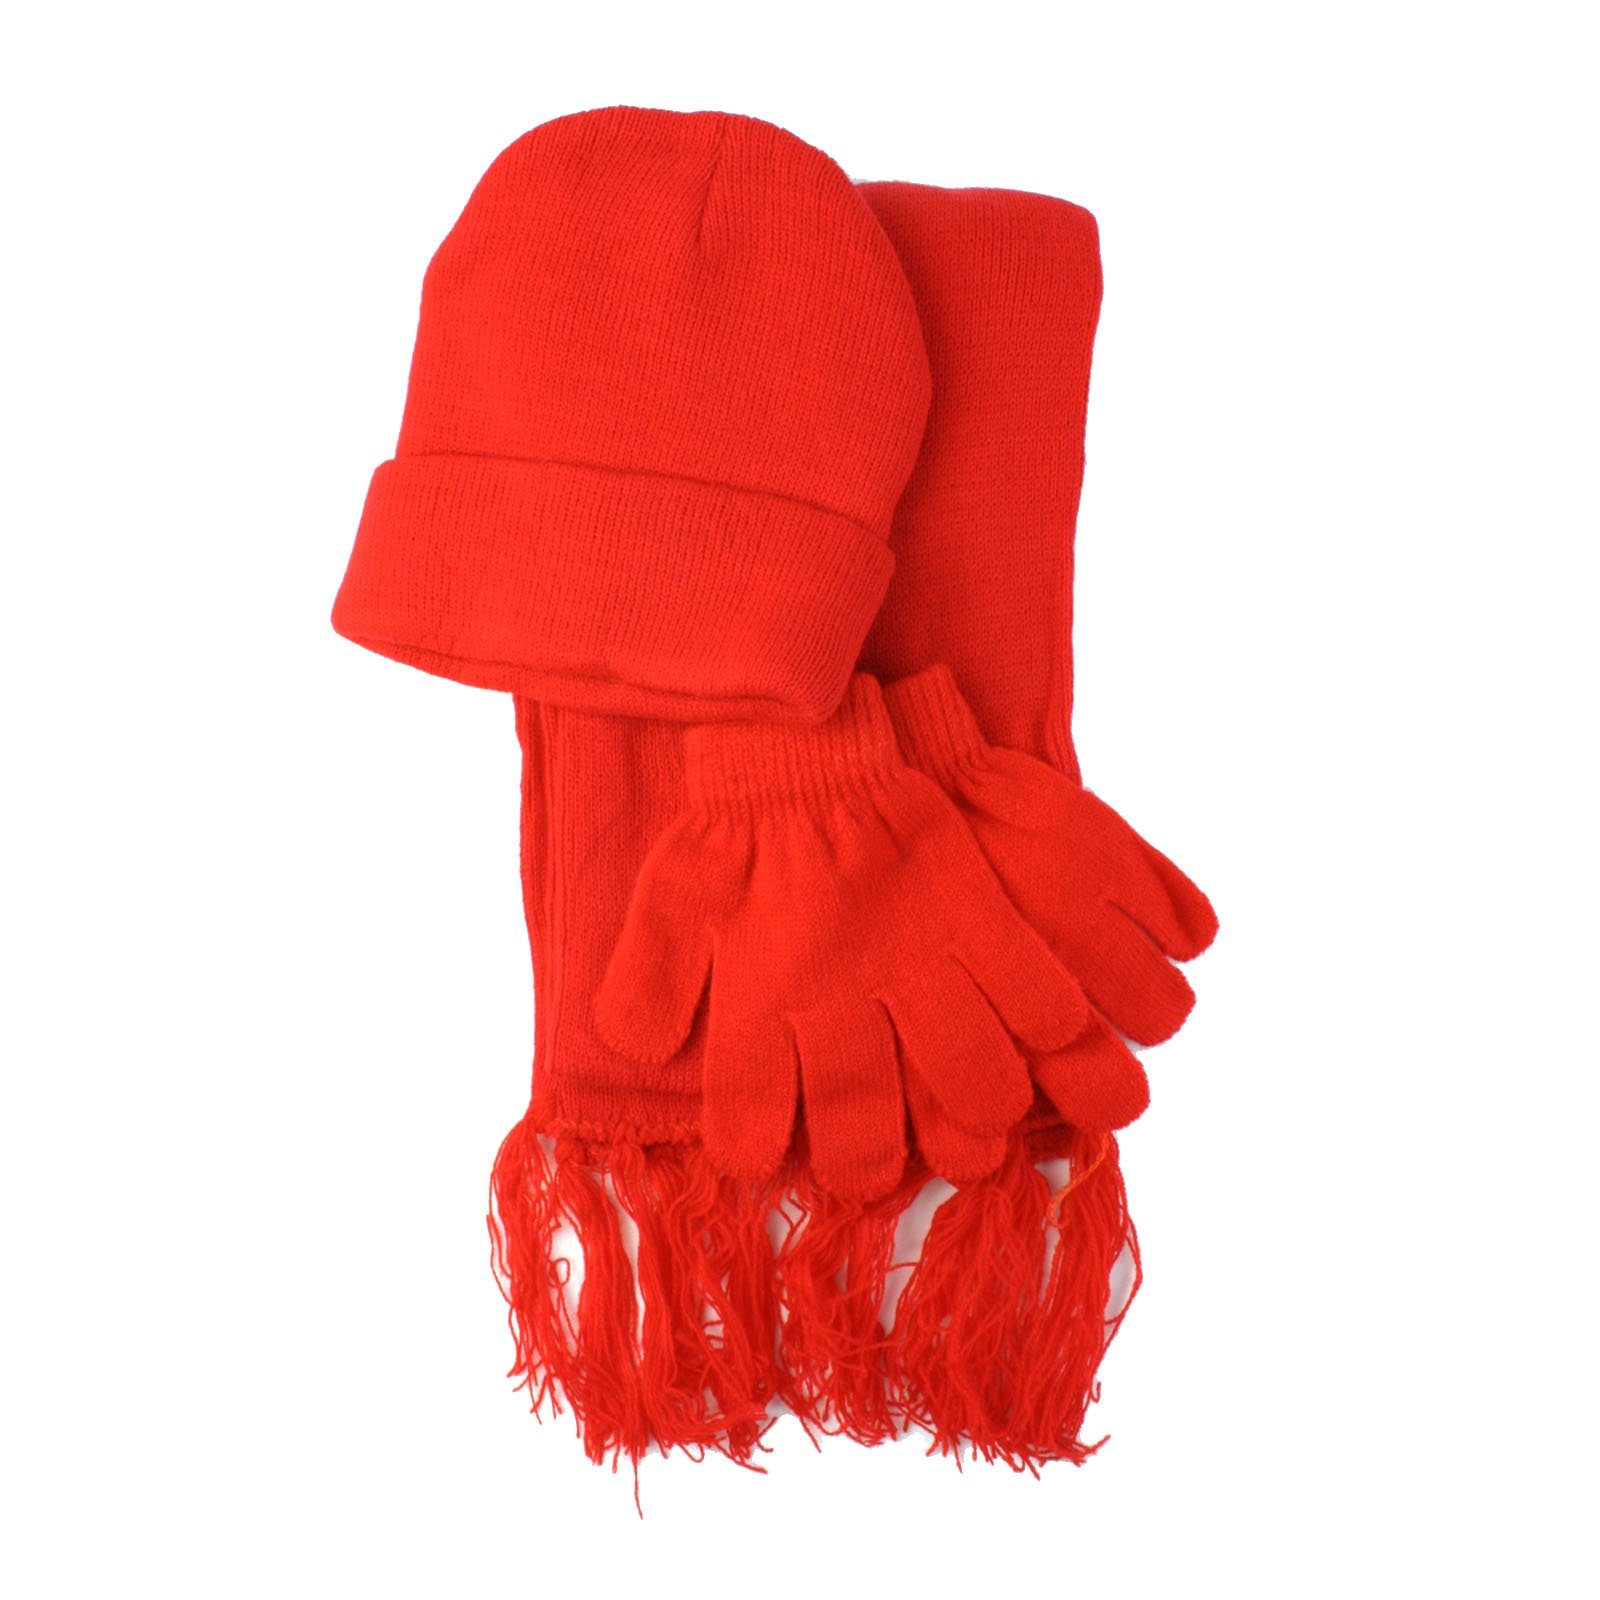 Winter Girls Kids Age 4-9 Knit Scarf Beanie Hat Cap Glove Ski Snow Set Red